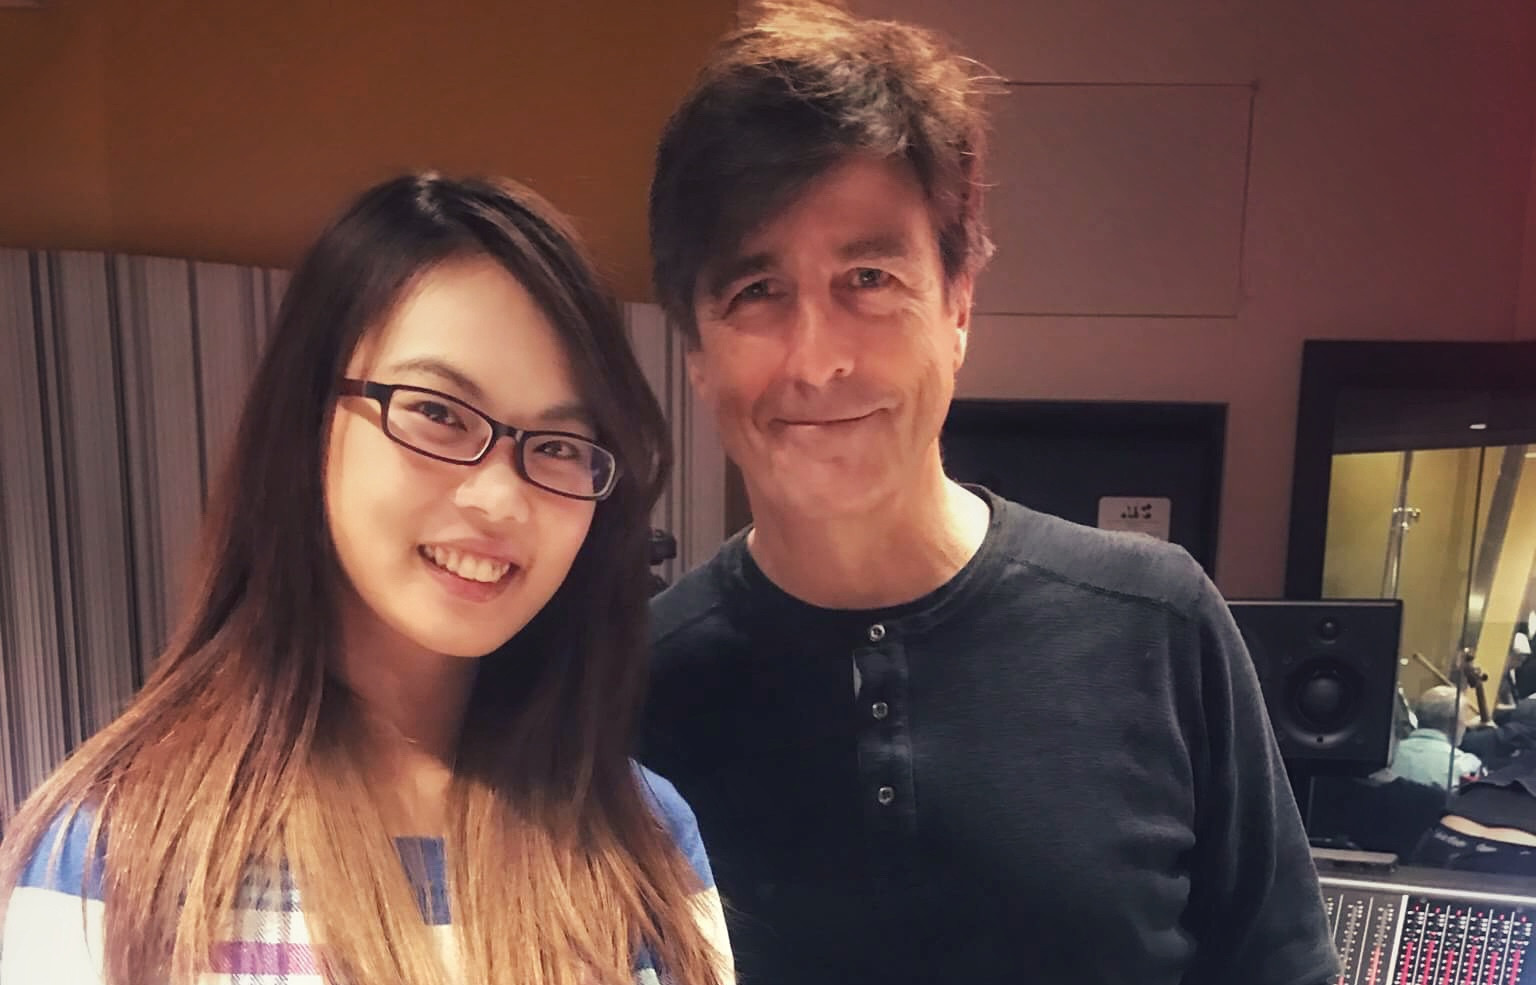 Recording for Thomas Newman, six Grammys and an Emmy Winner